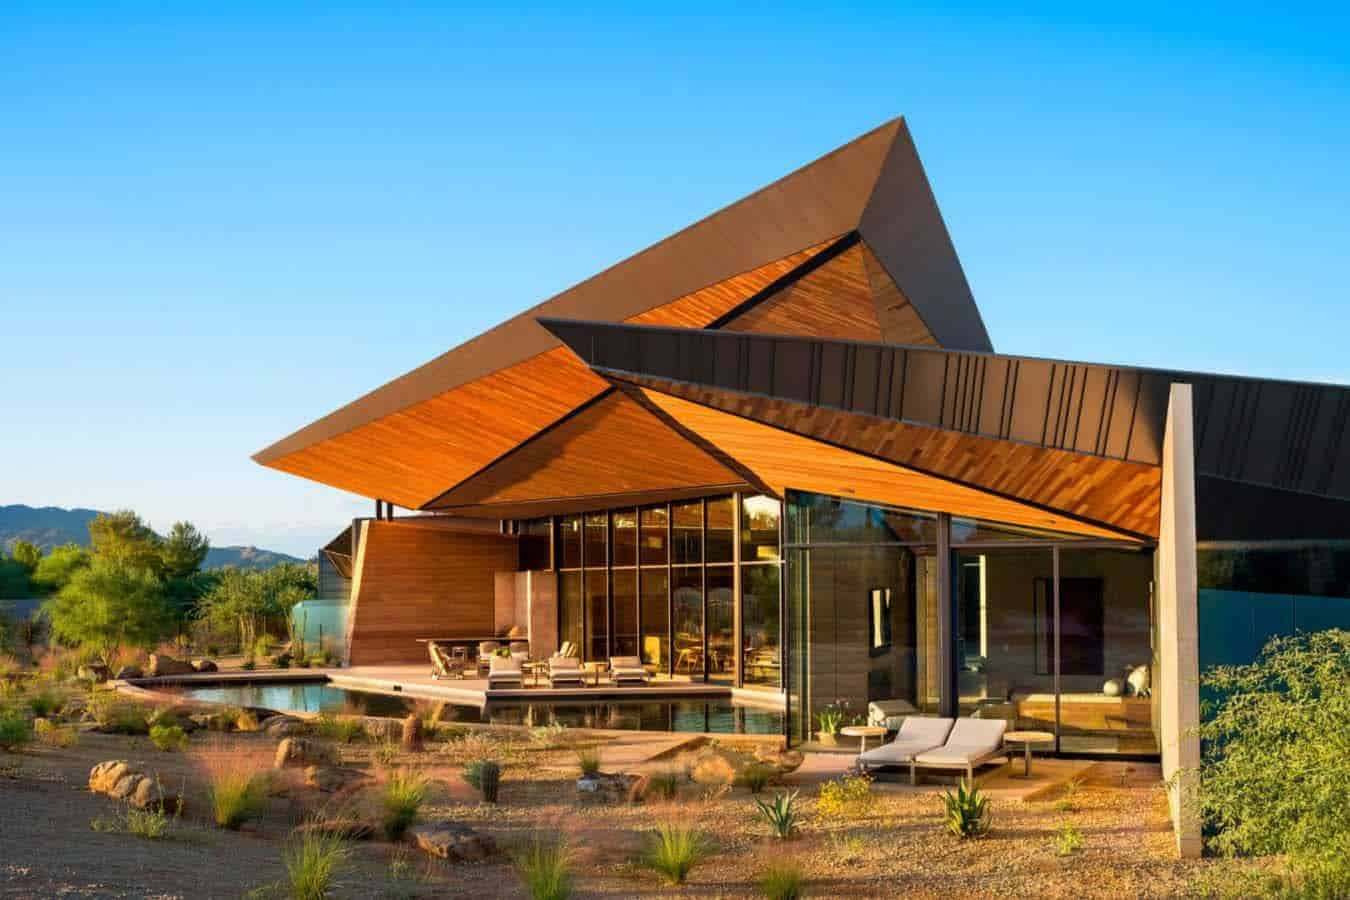 Rammed Earth Home Is Architectural Masterpiece In The